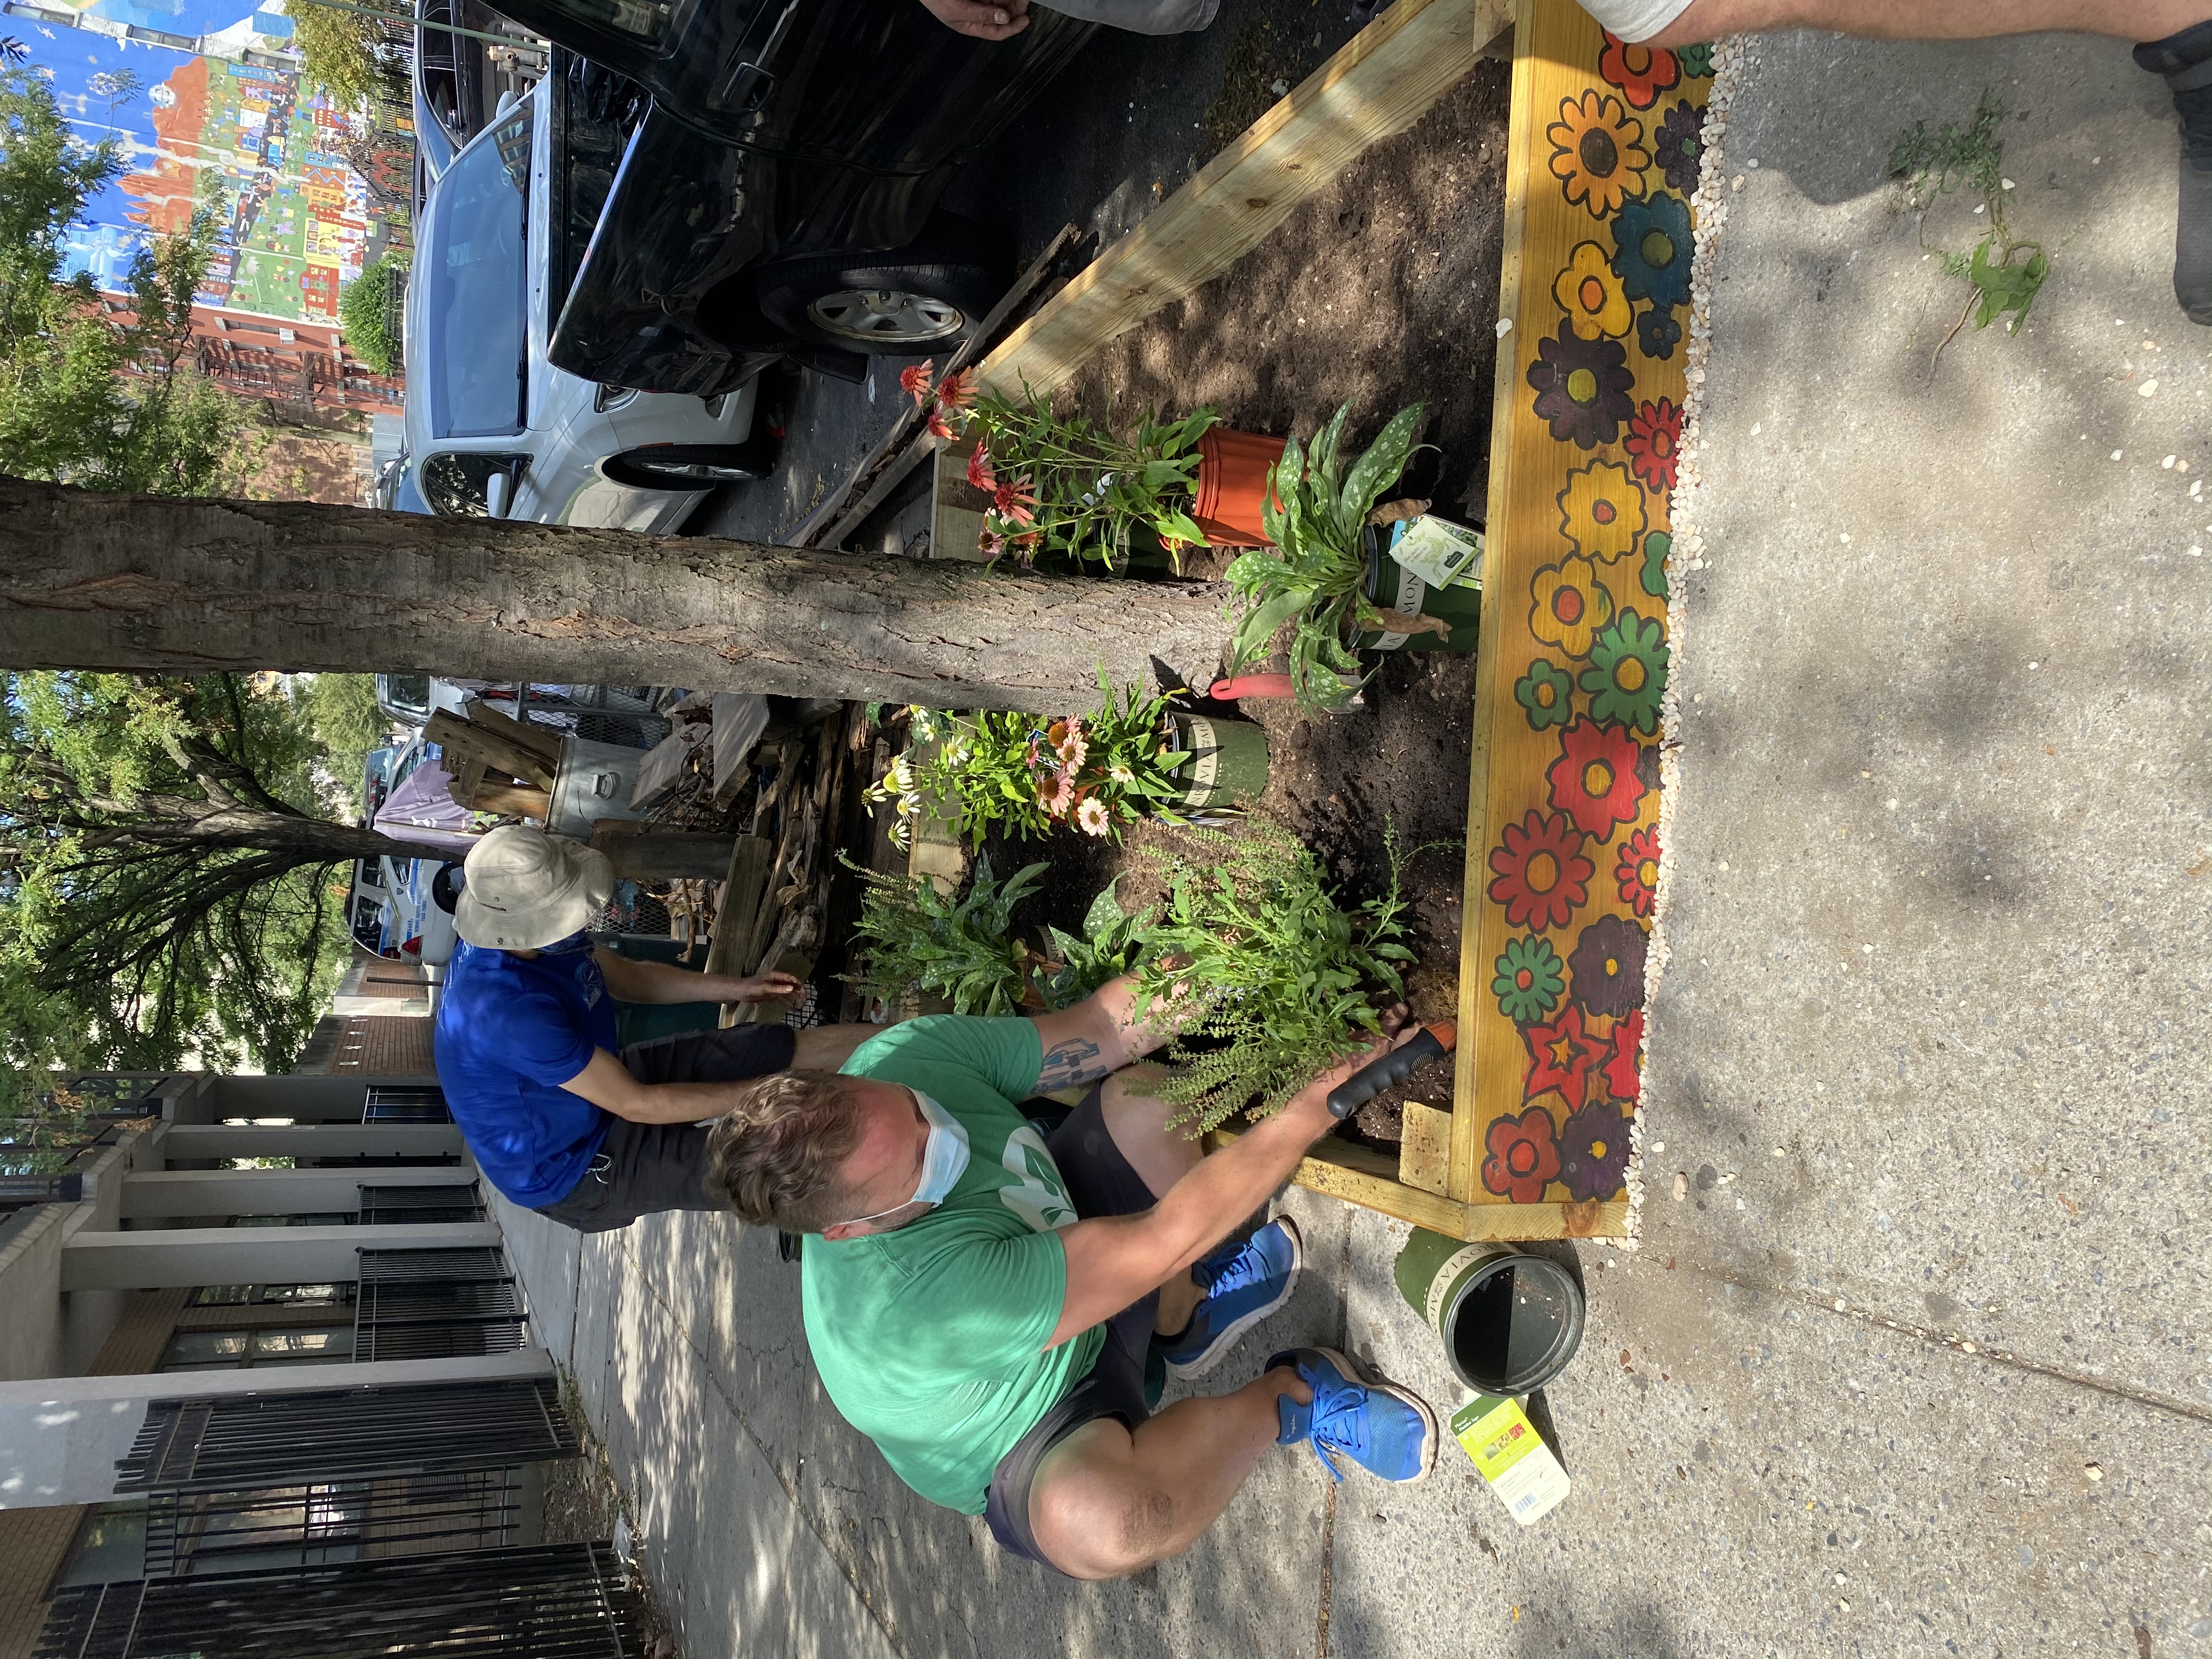 Gardeners installing wooden planks to create a planter box on the sidewalk adjacent to carver garden